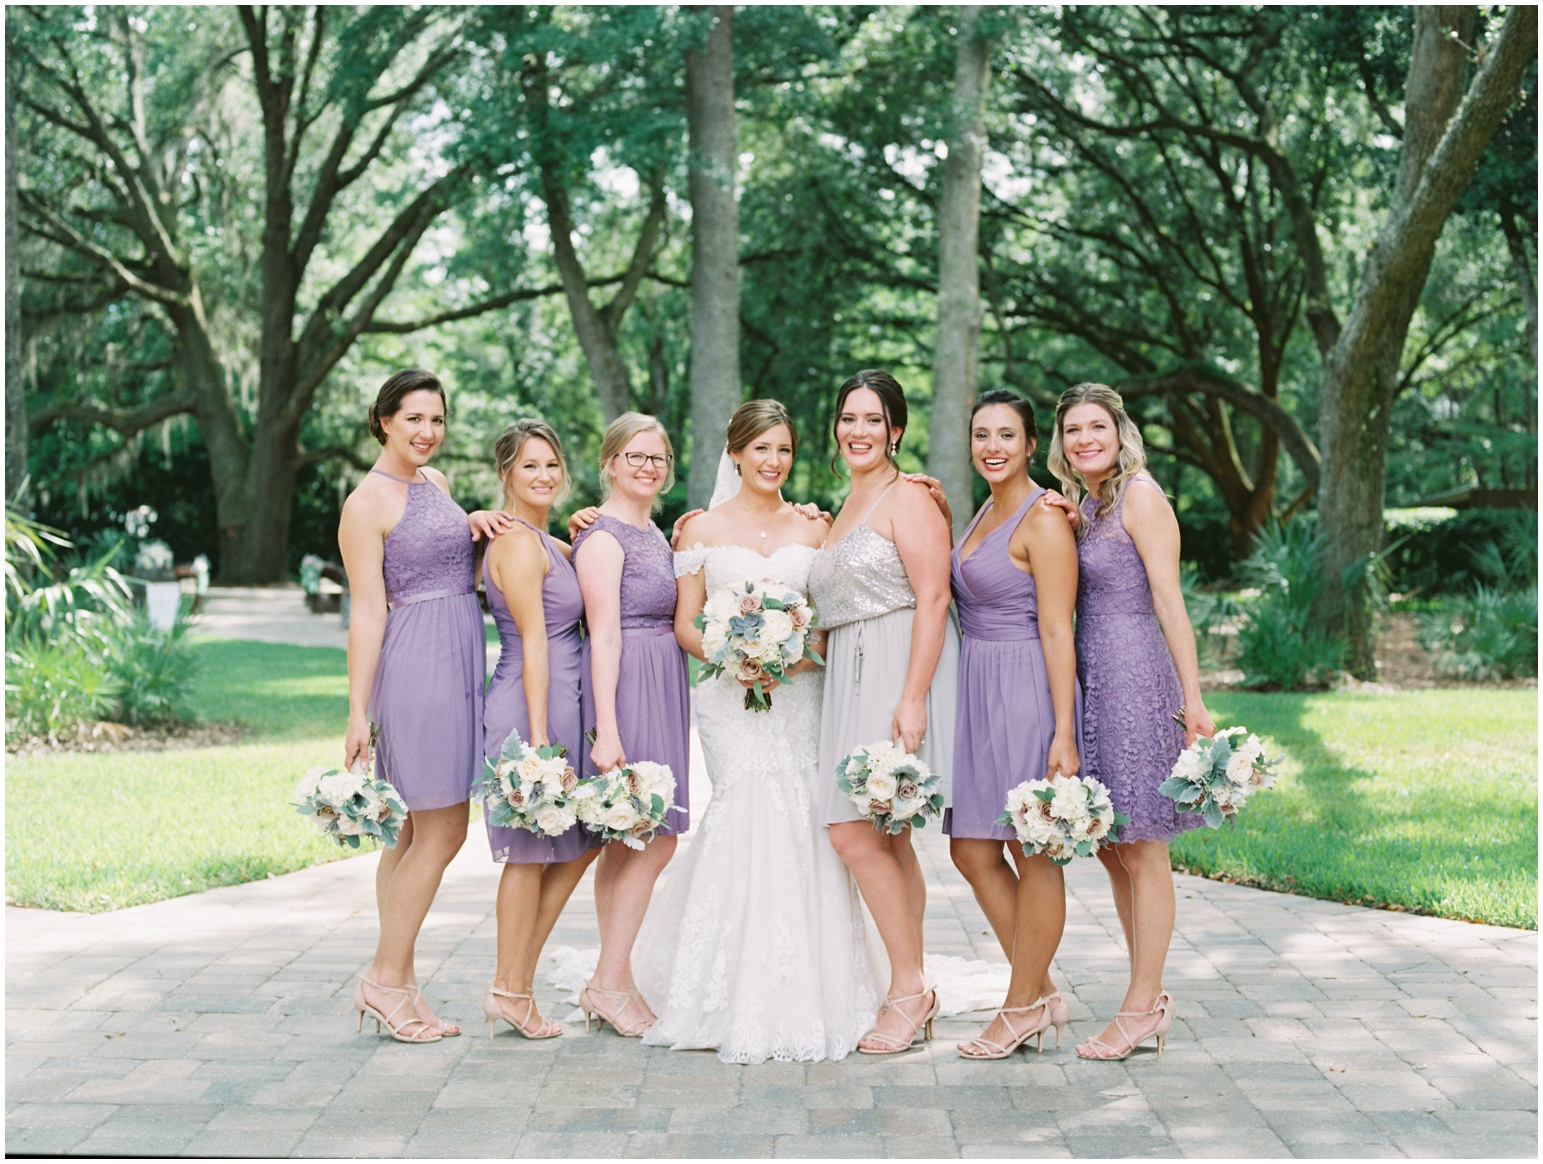 Lisa Silva Photography- Jacksonville, St Augustine, Fernandina Beach, Amelia Island, Ponte Vedra Beach, North East Florida Fine Art Film Photographer- Ashley and Shawn's wedding at bowing oaks plantation_0022.jpg